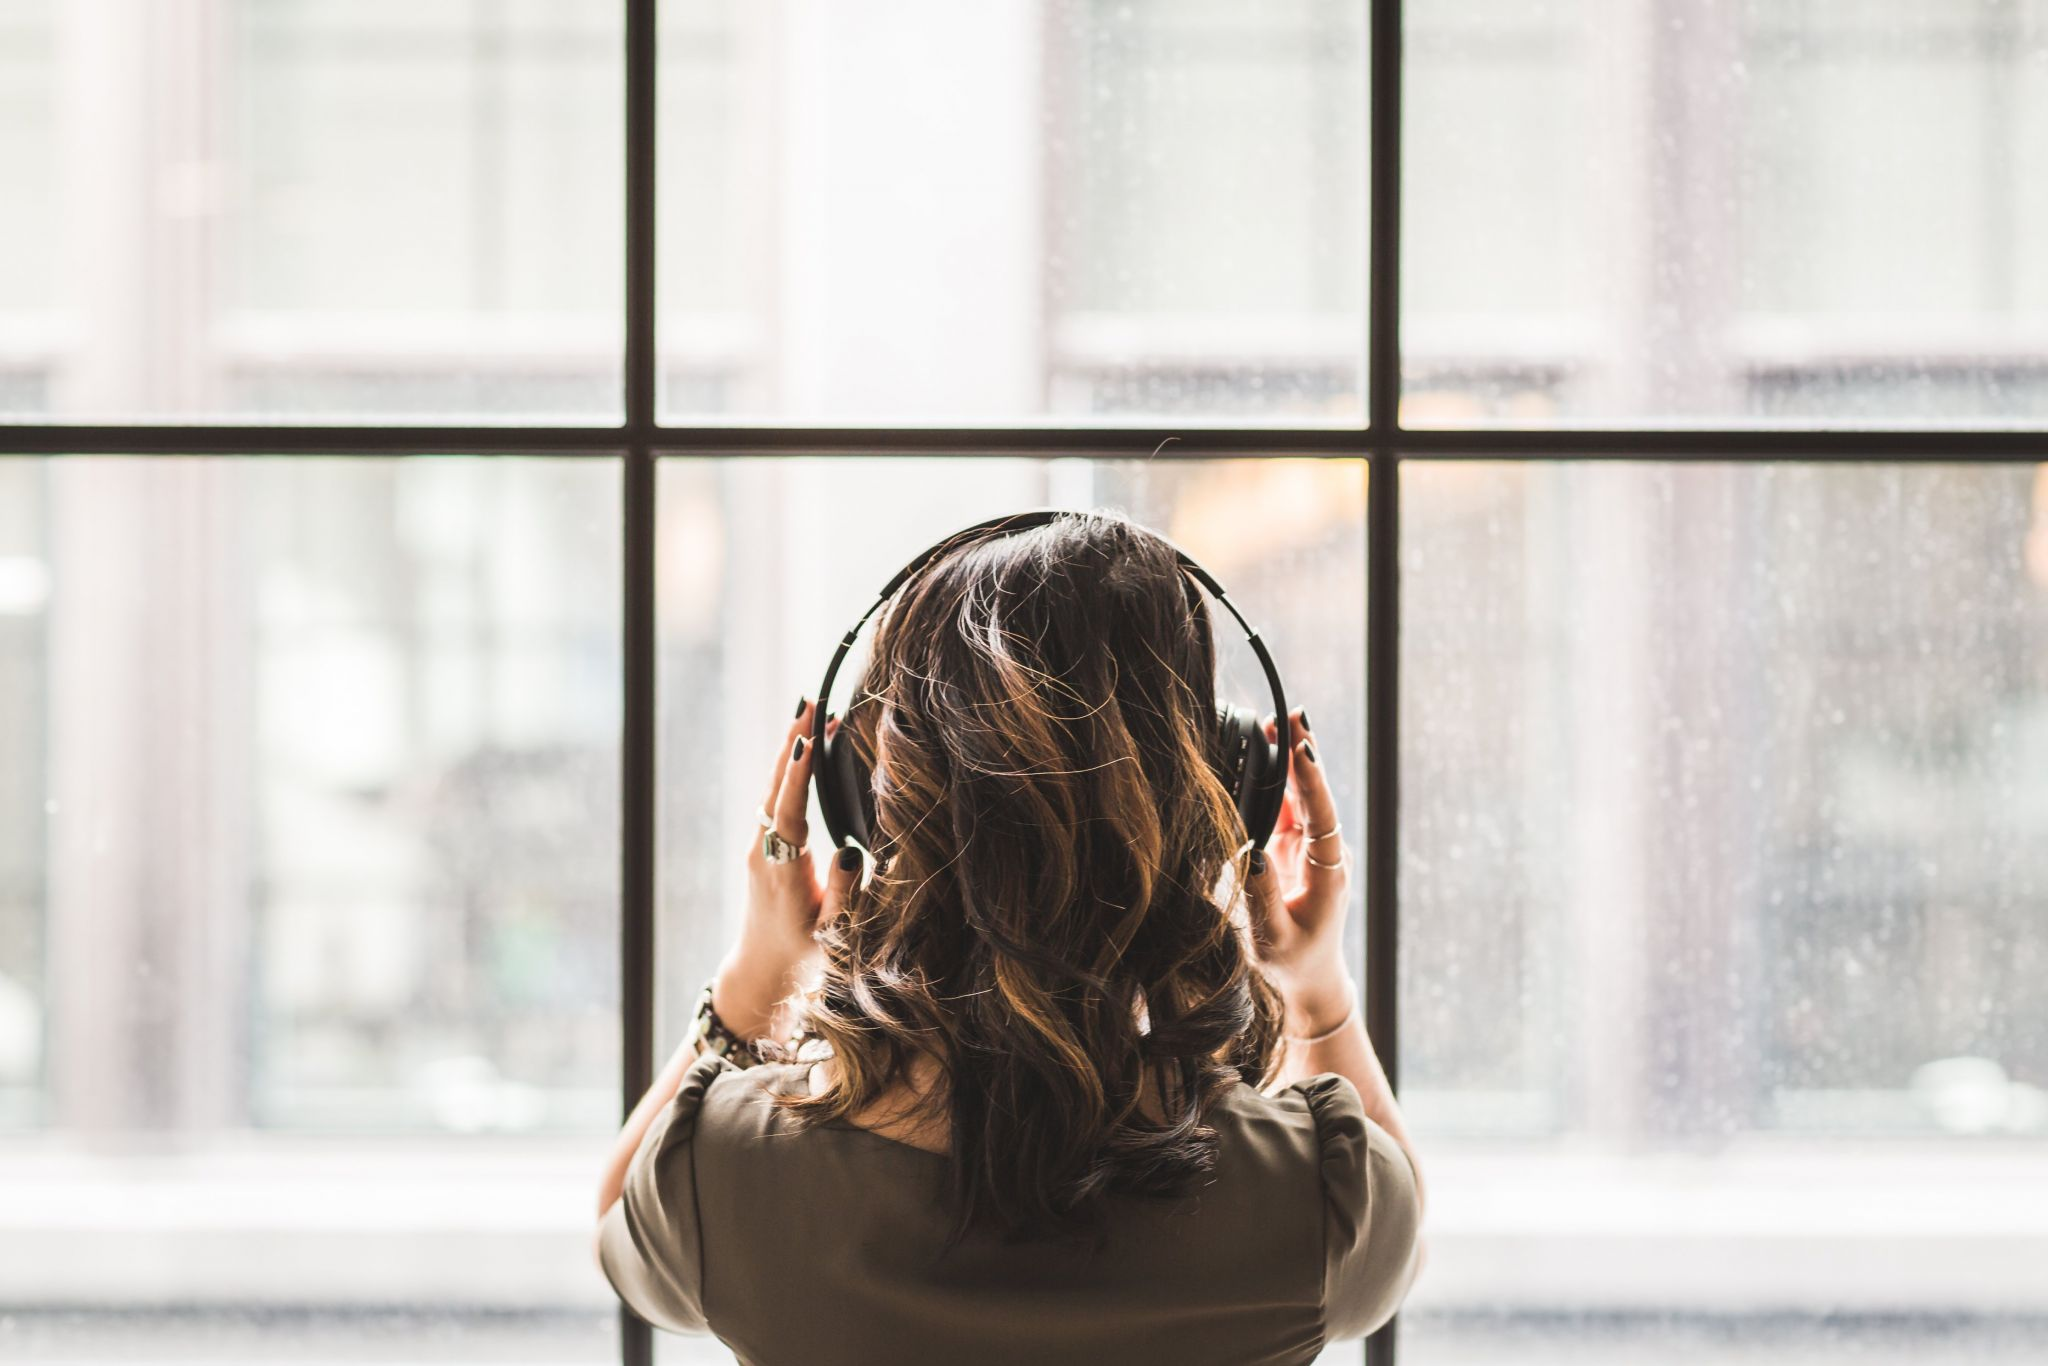 There are so many potential tinnitus triggers such as loud music through headphones